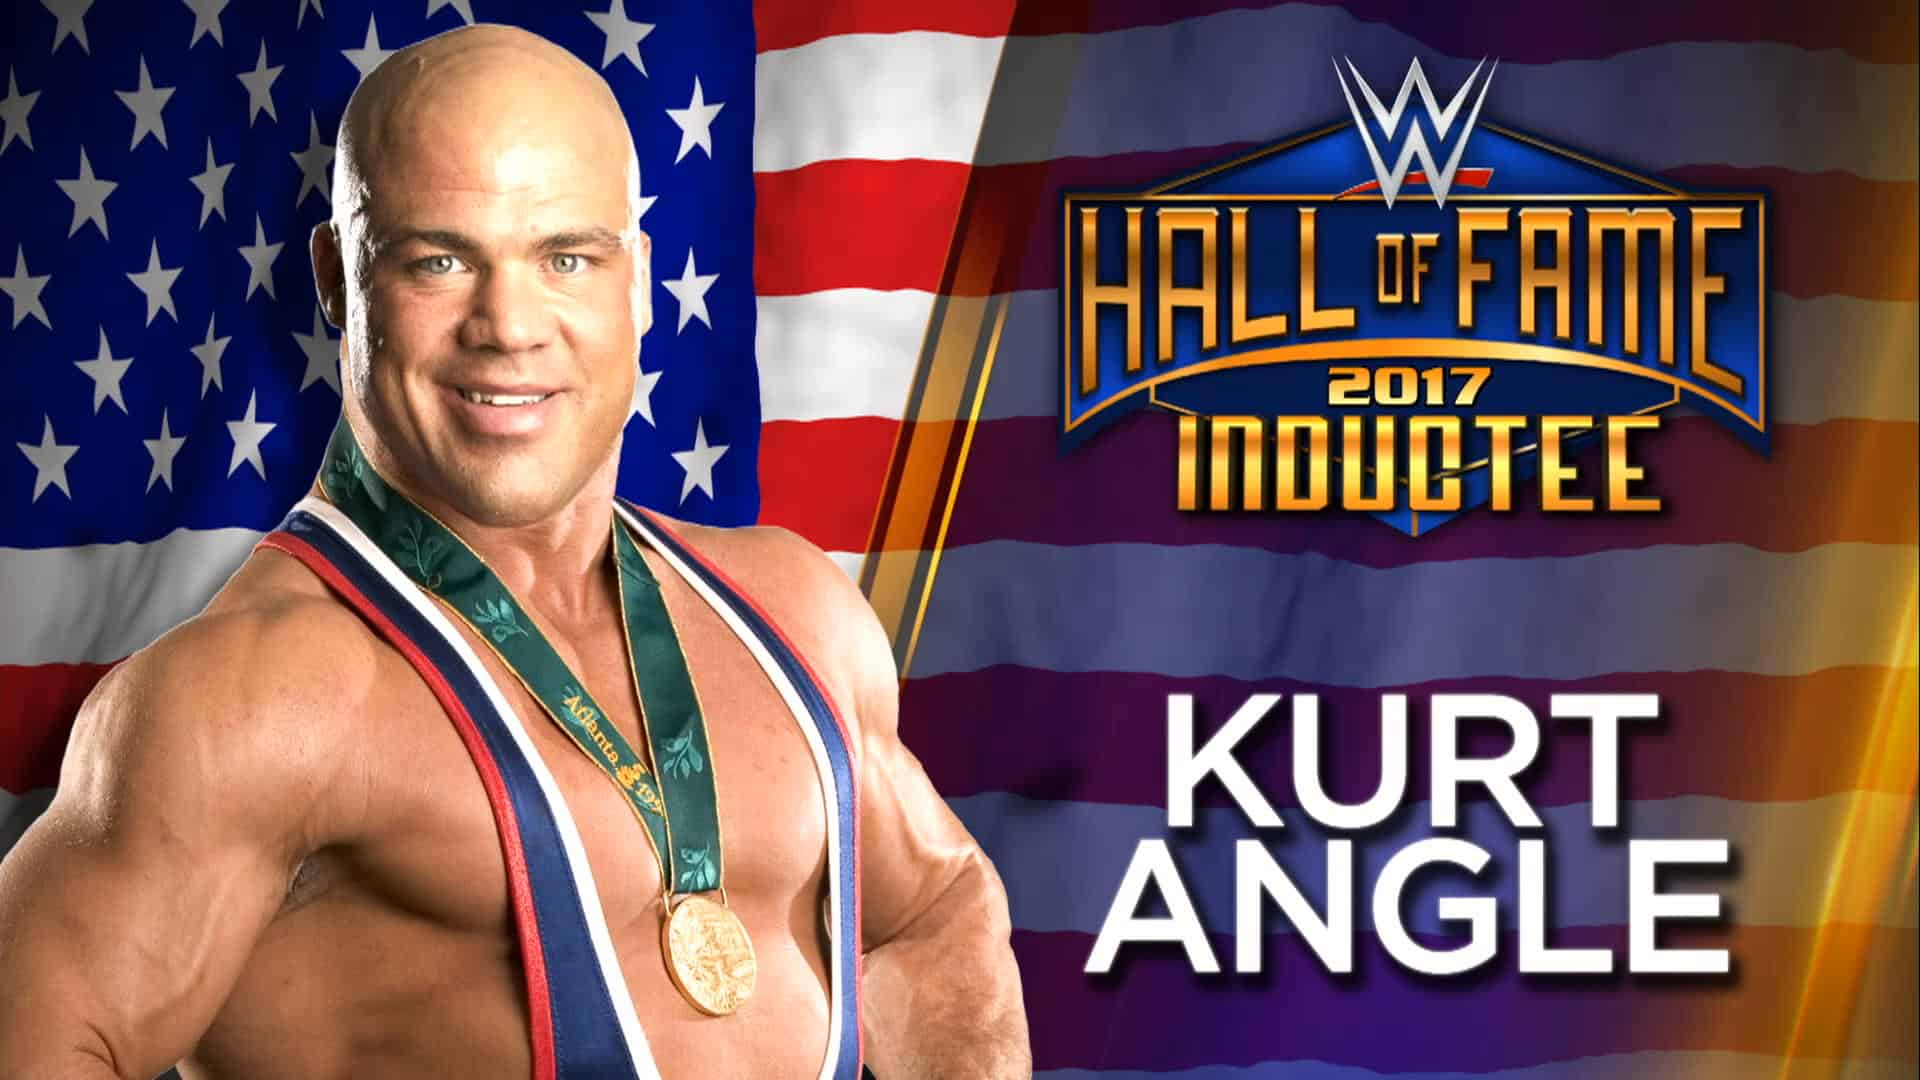 Graphic of Kurt Angle with gold medal on his neck for this Hall of Fame Induction